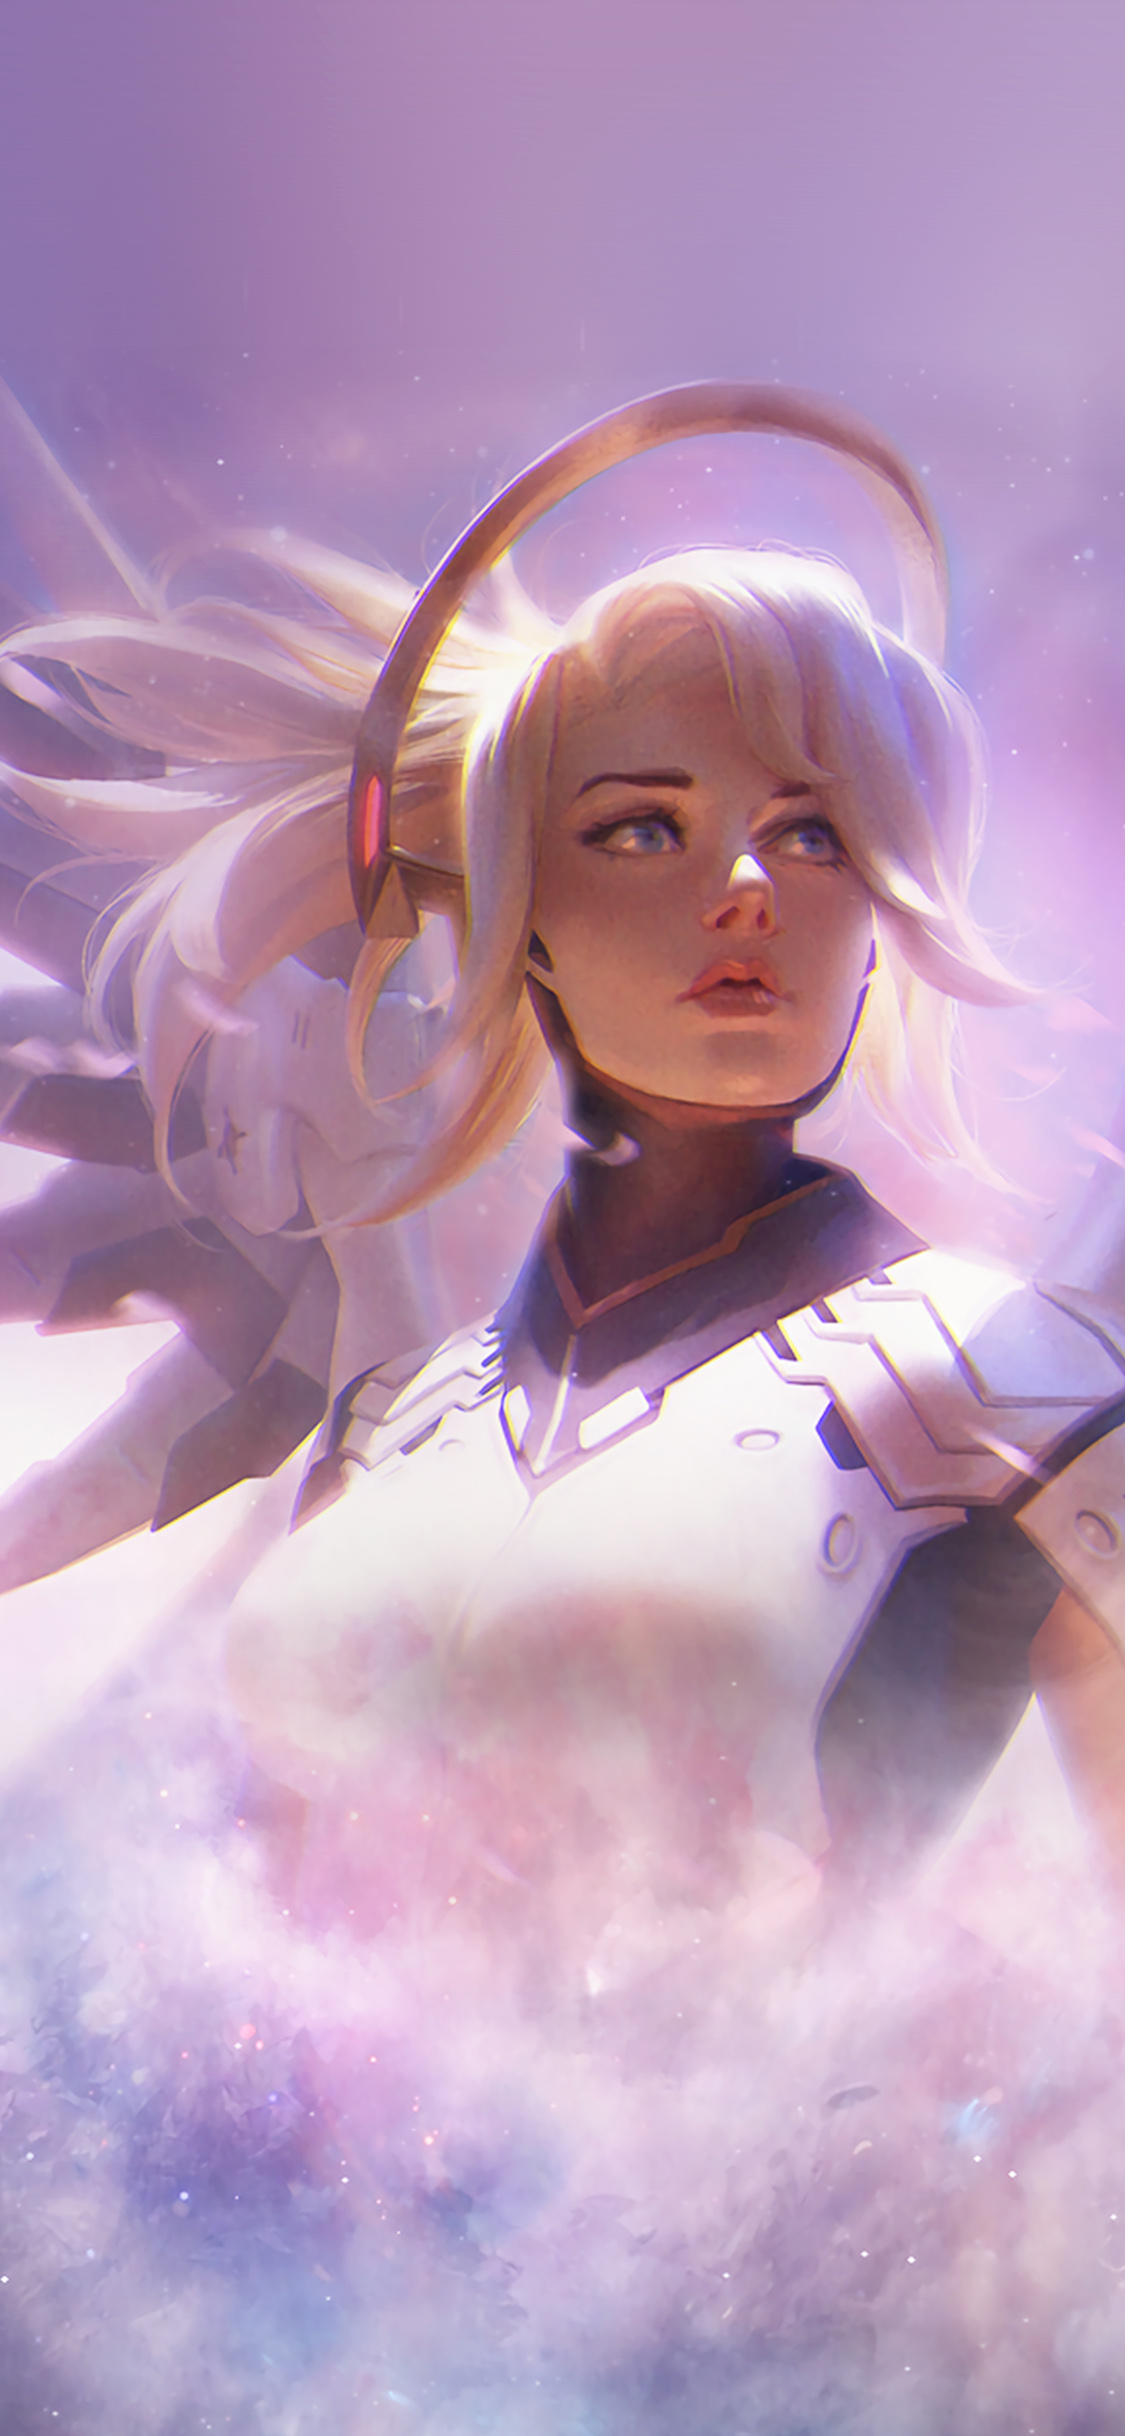 As12 Mercy Overwatch Game Art Illustration Wallpaper